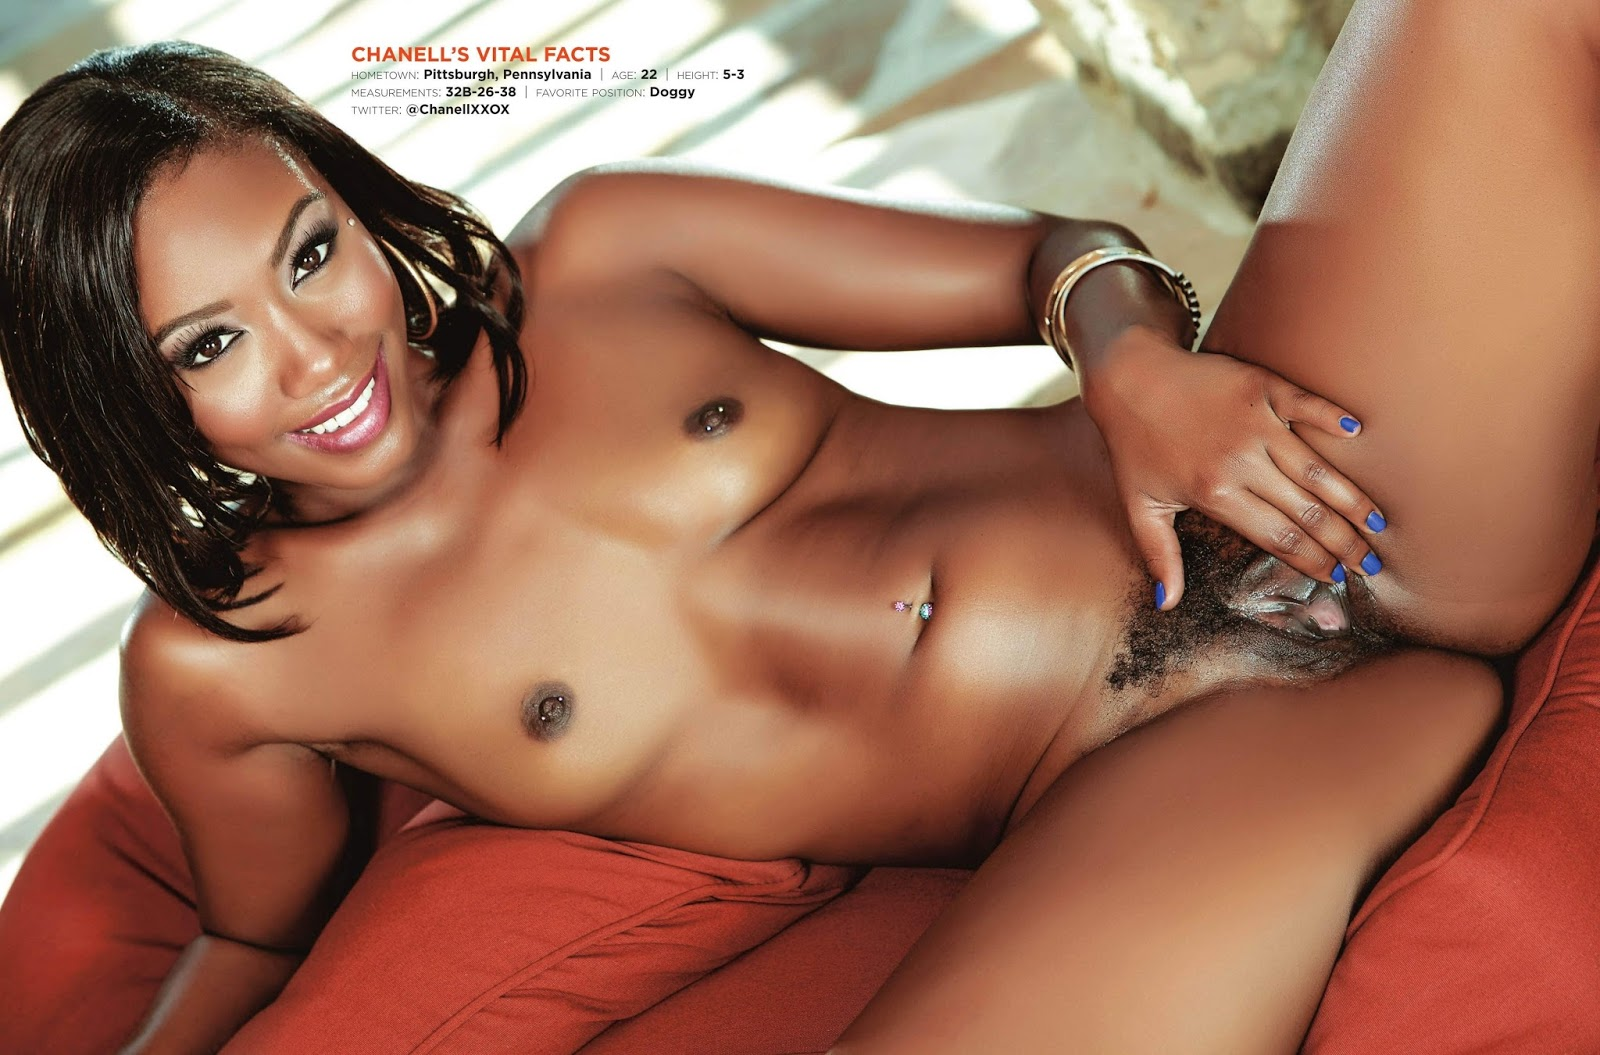 hot women magazine nude